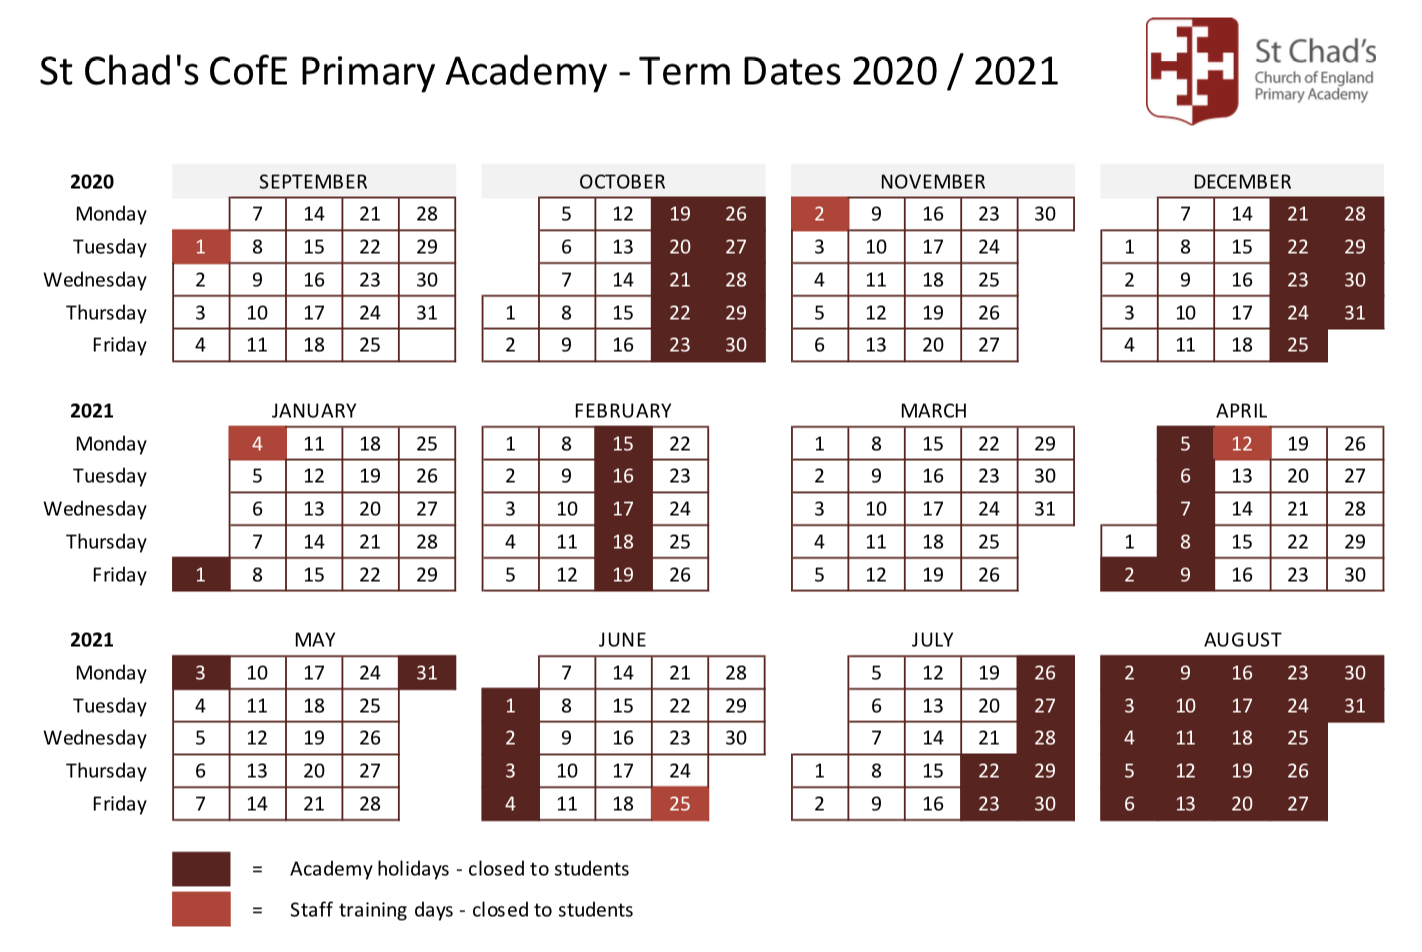 St Chad's CofE Primary Academy Term dates 2020/2021